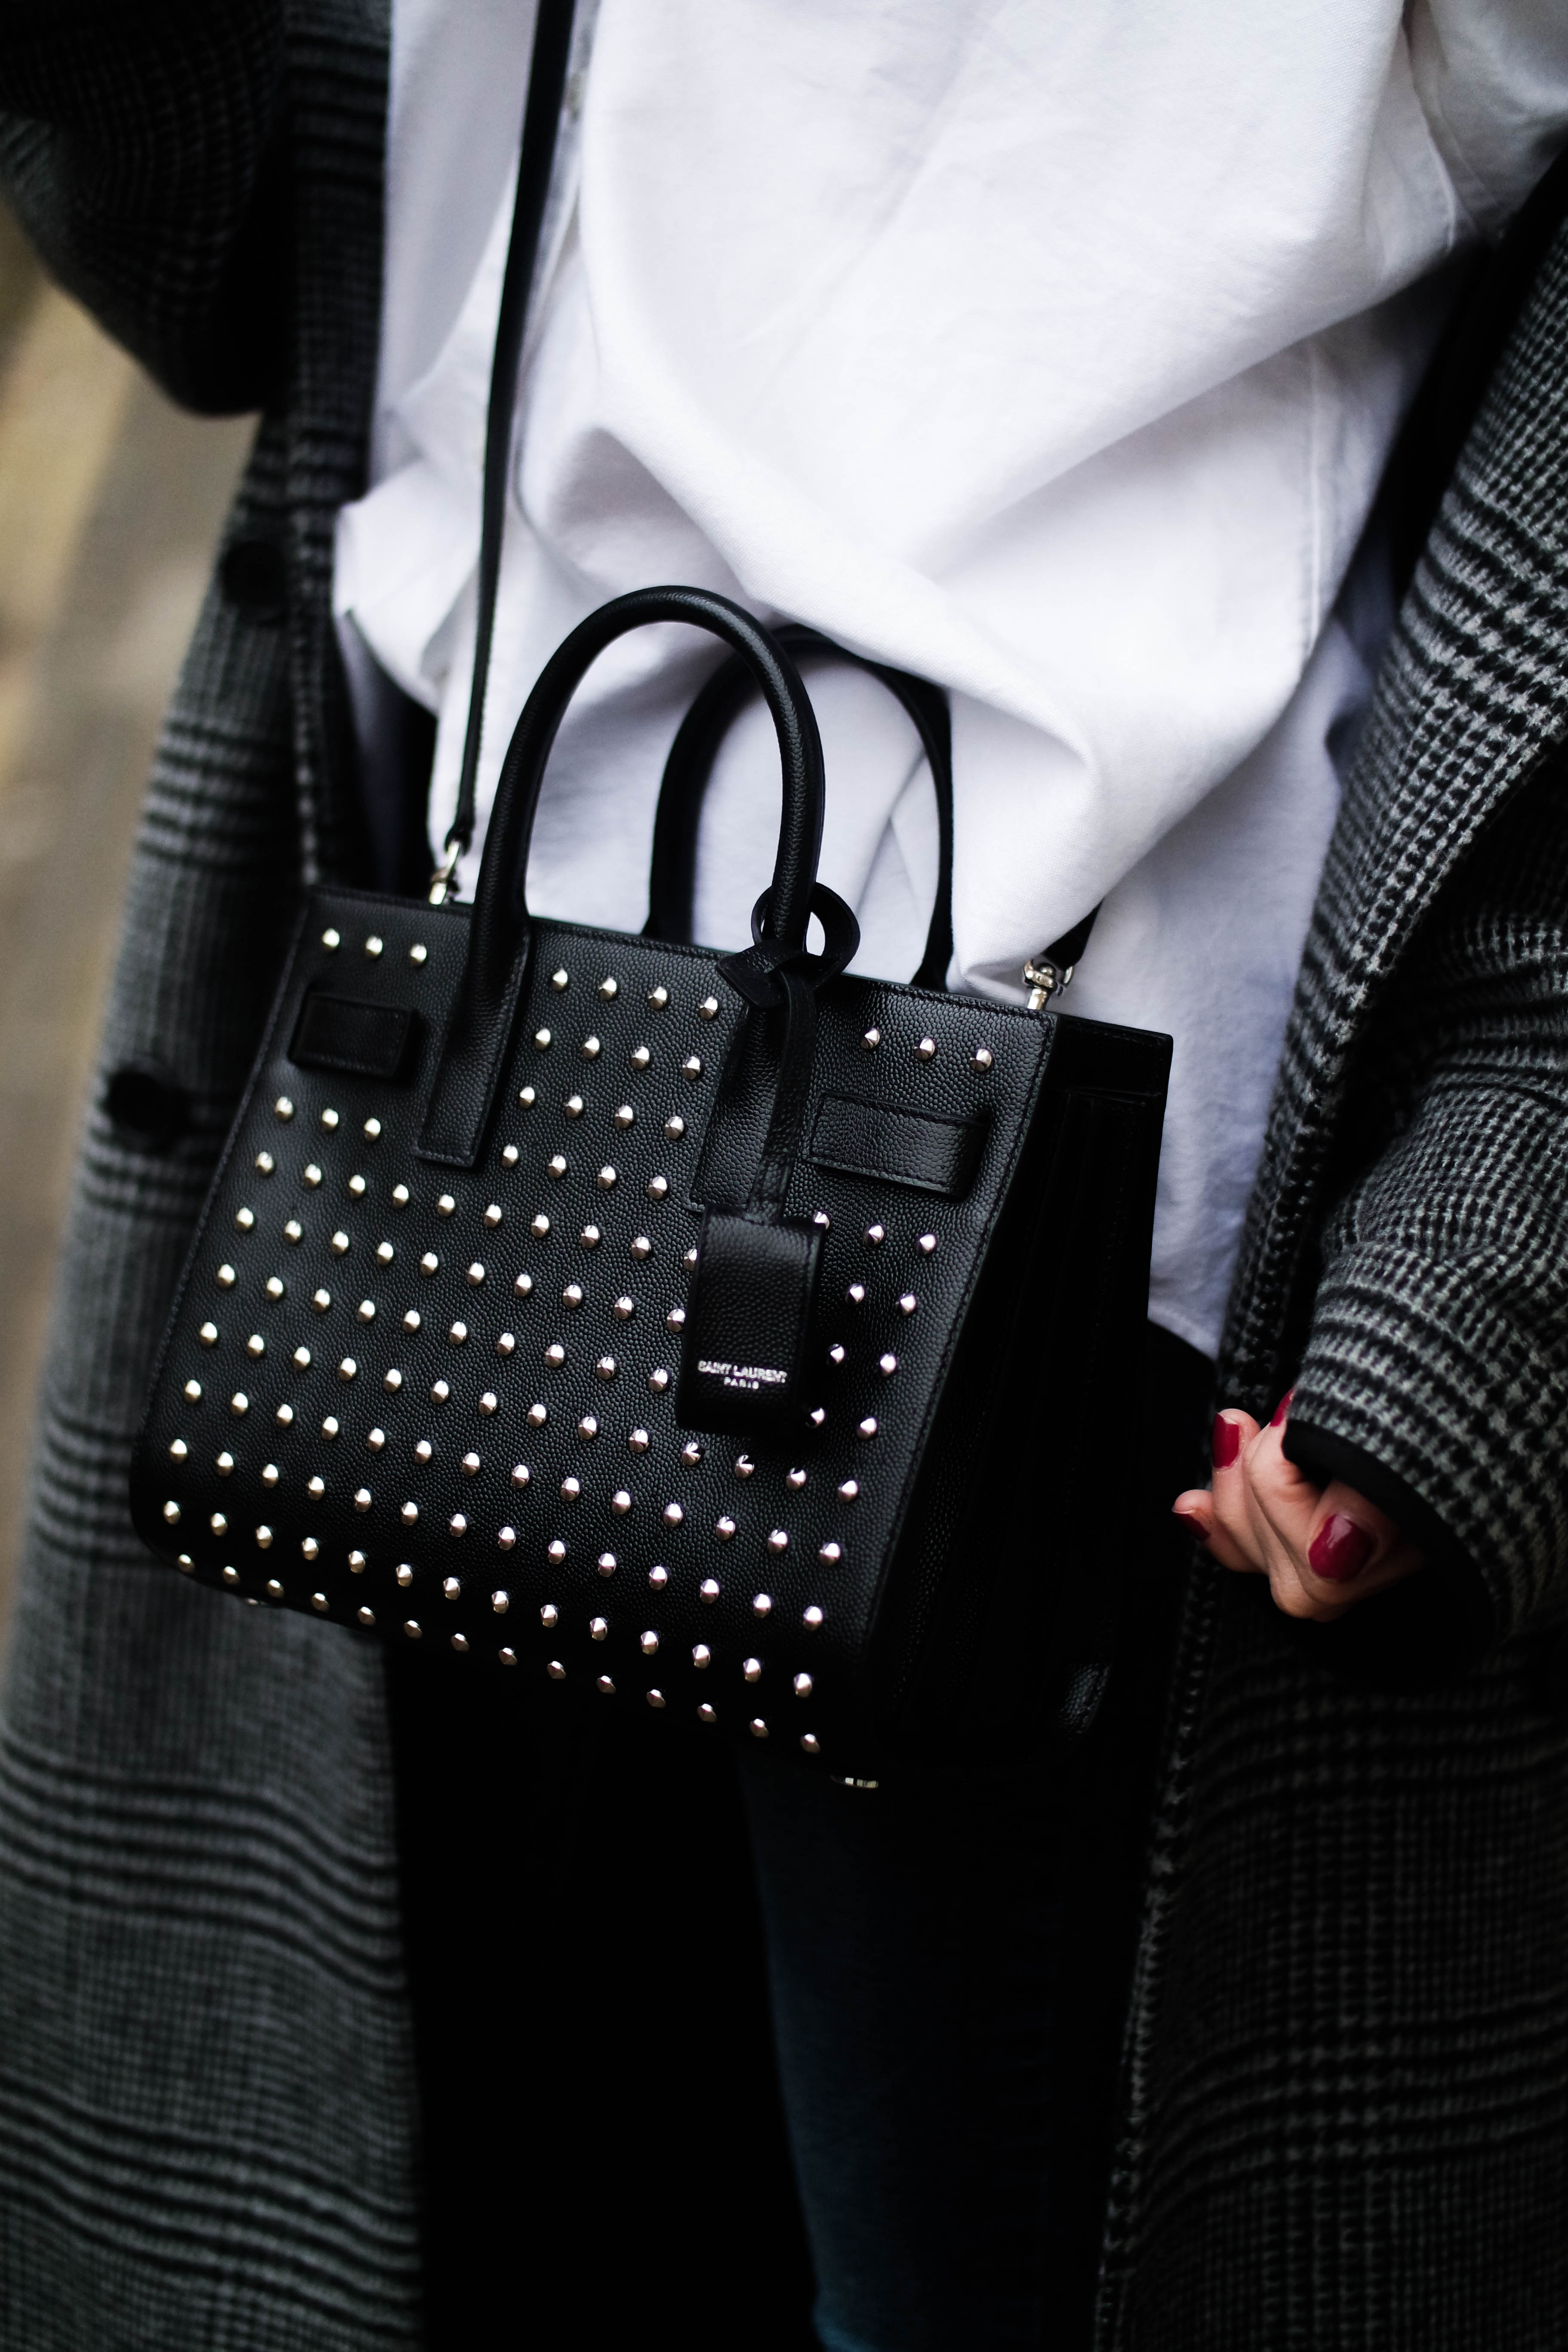 195d7e437d81 Say Hello To Saint (Laurent) | Love Style Mindfulness - Fashion ...